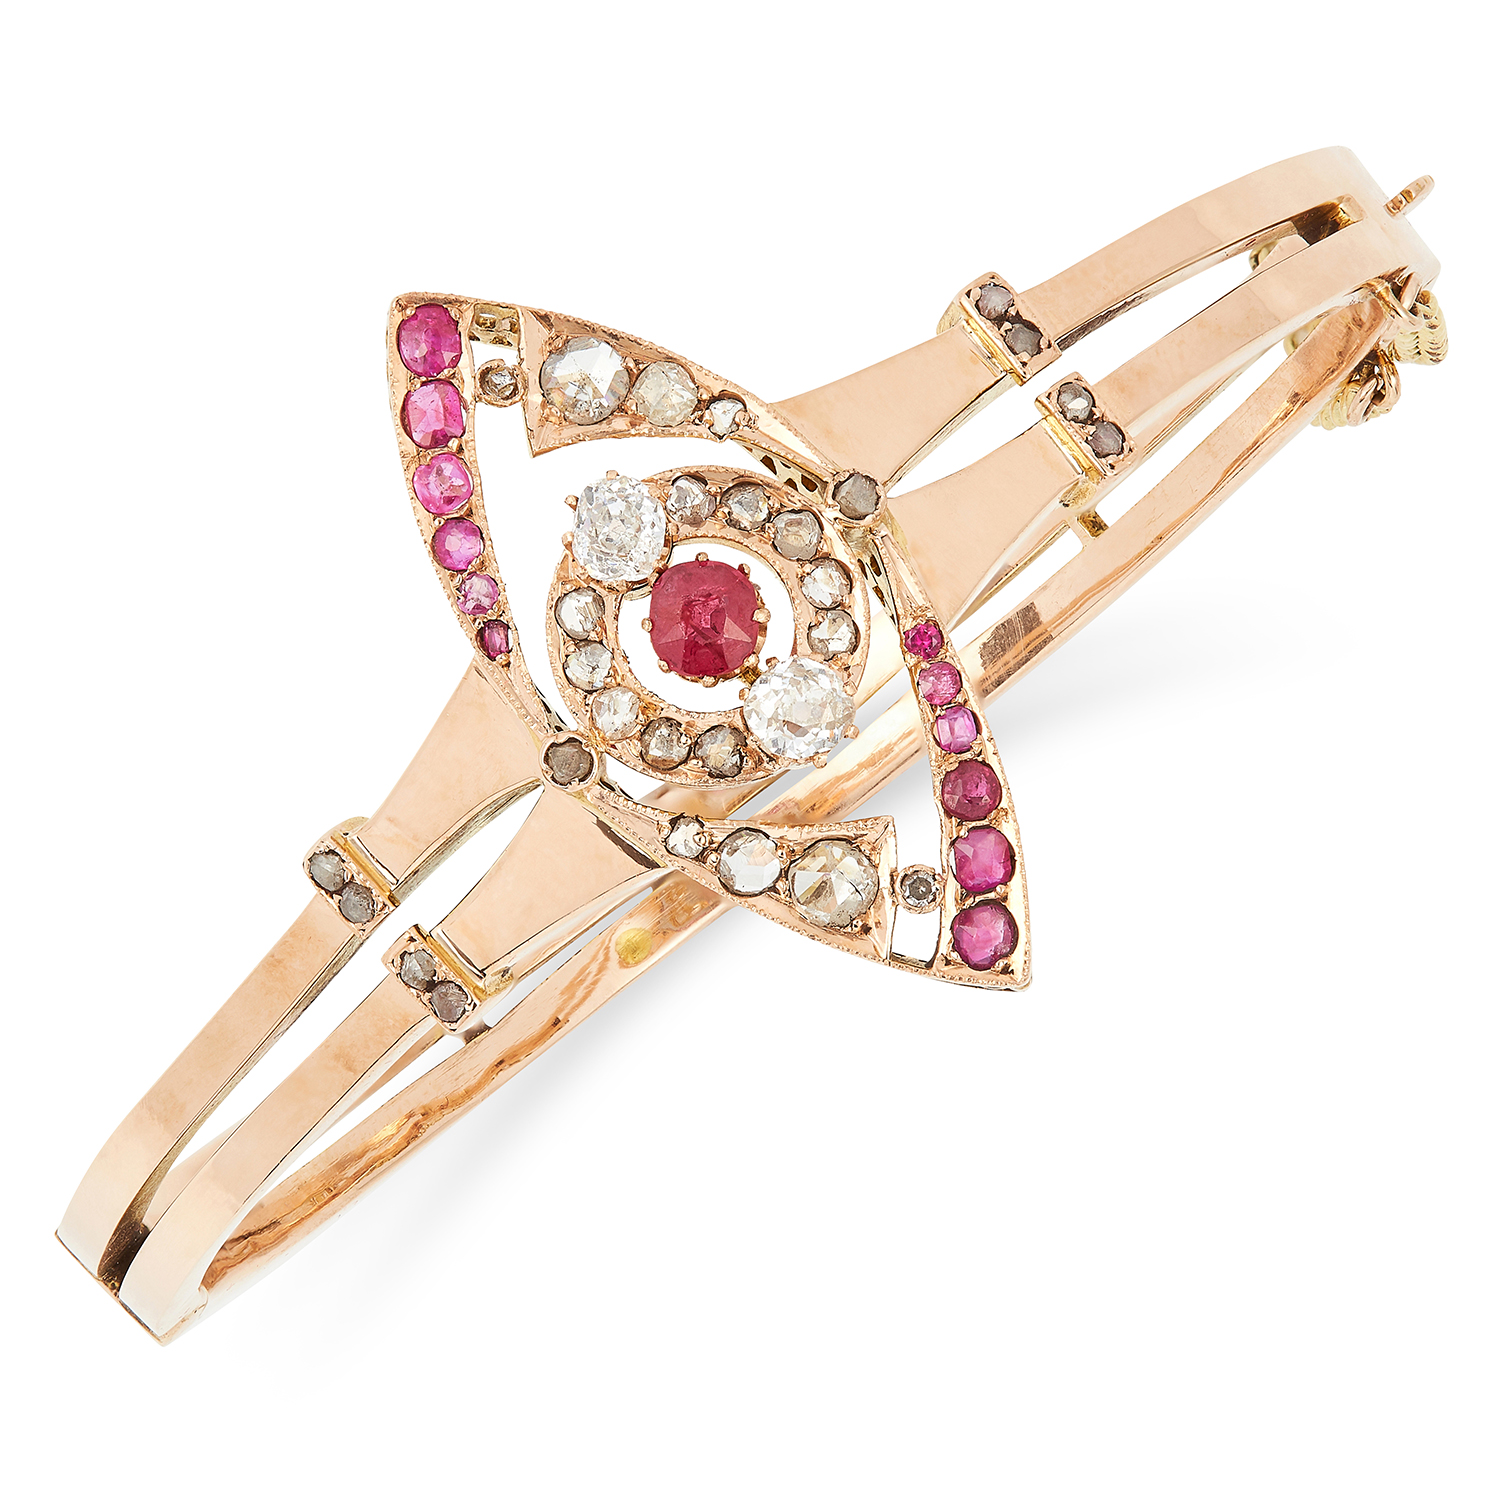 Los 32 - ANTIQUE RUBY AND DIAMOND BANGLE the marquise face is set with cushion cut rubies and old and rose